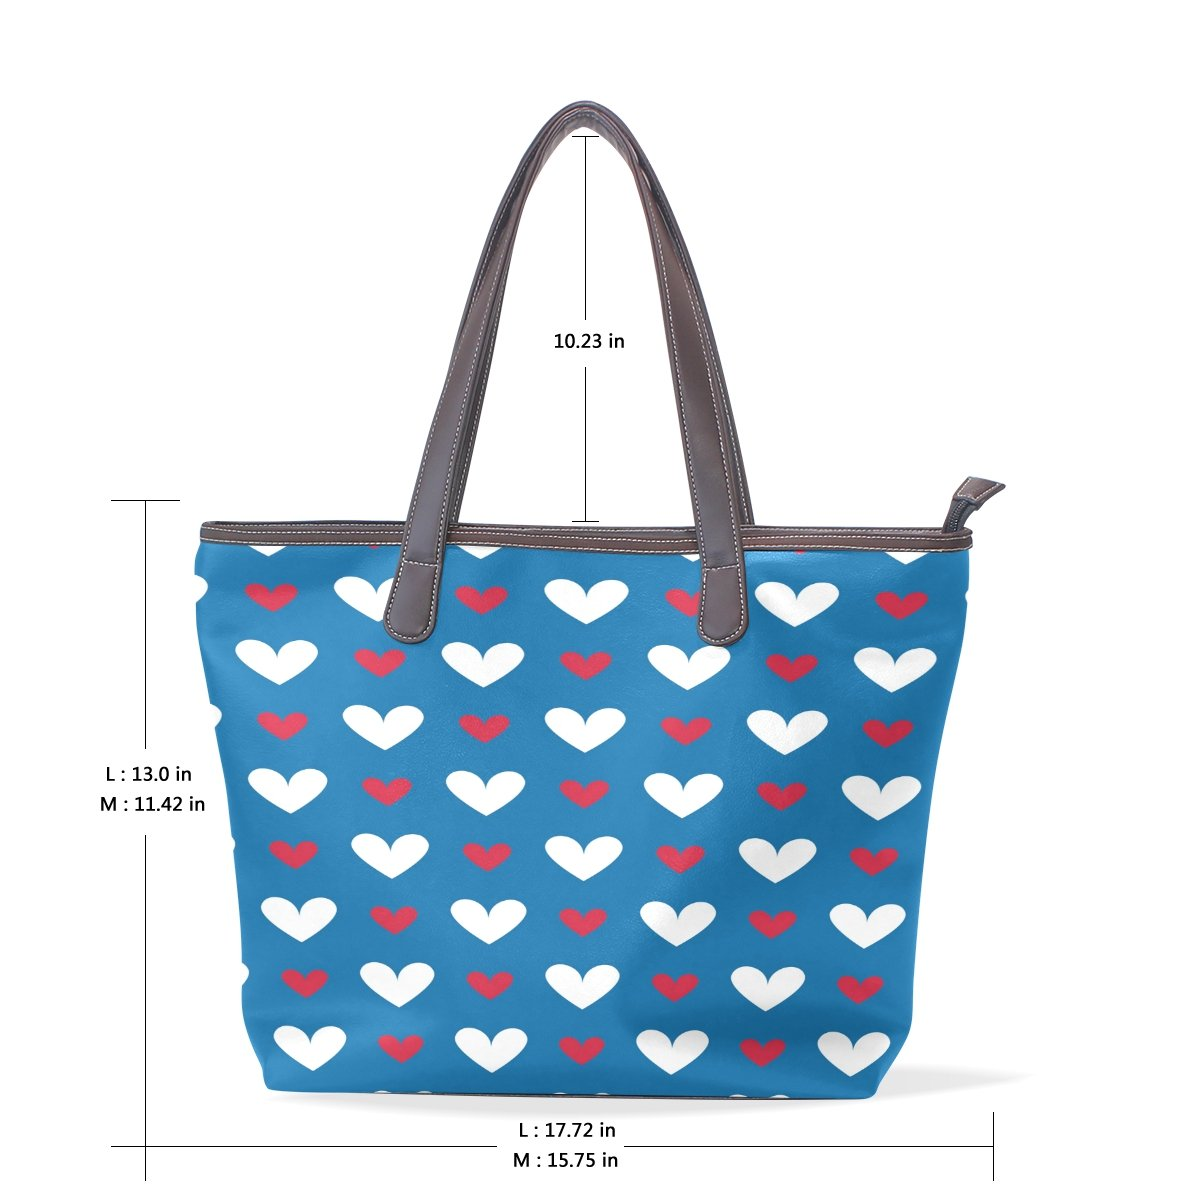 SCDS Red And White Hearts PU Leather Lady Handbag Tote Bag Zipper Shoulder Bag